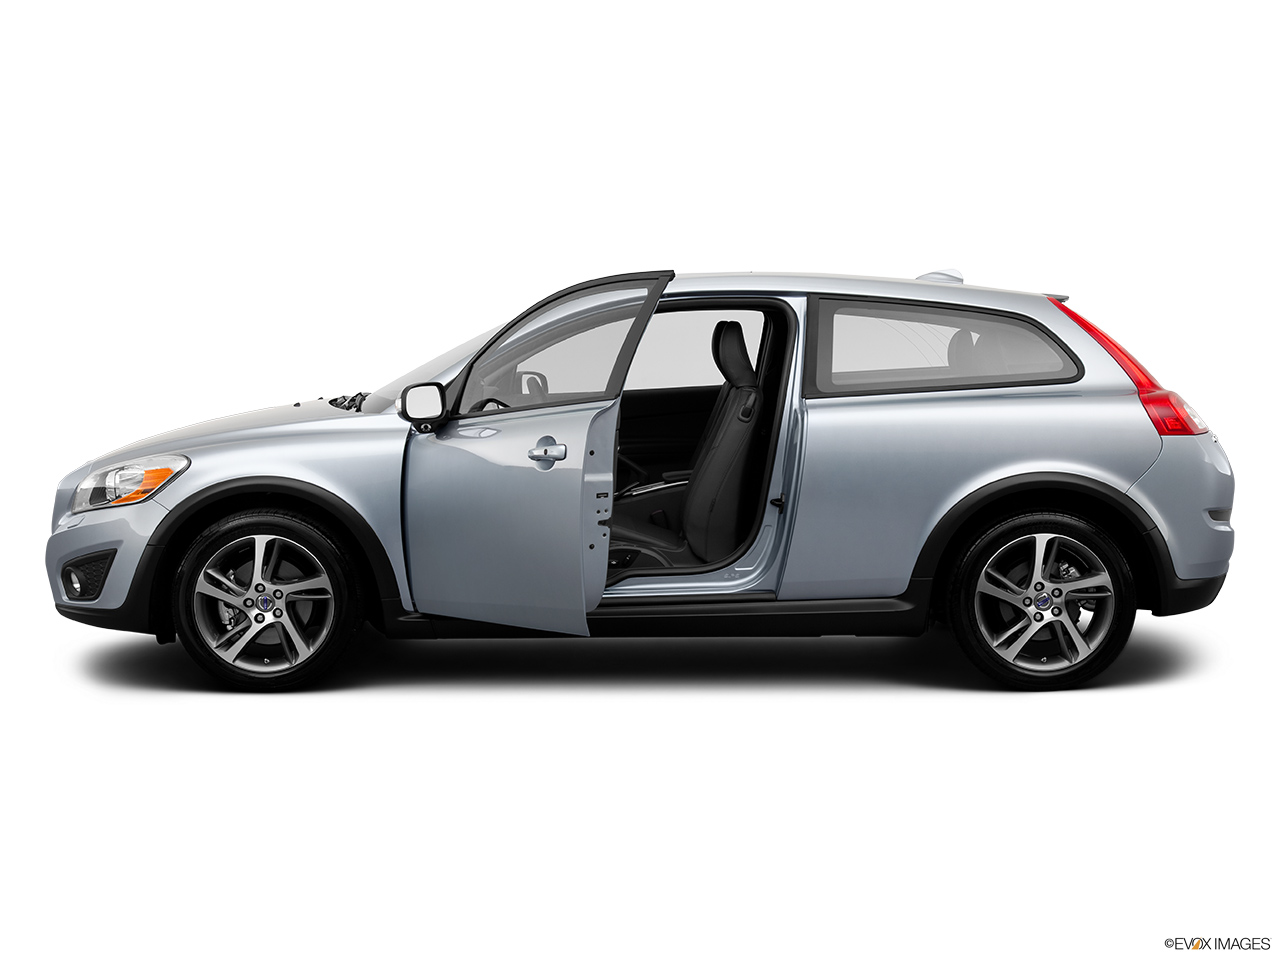 2013 Volvo C30 T5 Premier Plus Driver's side profile with drivers side door open.